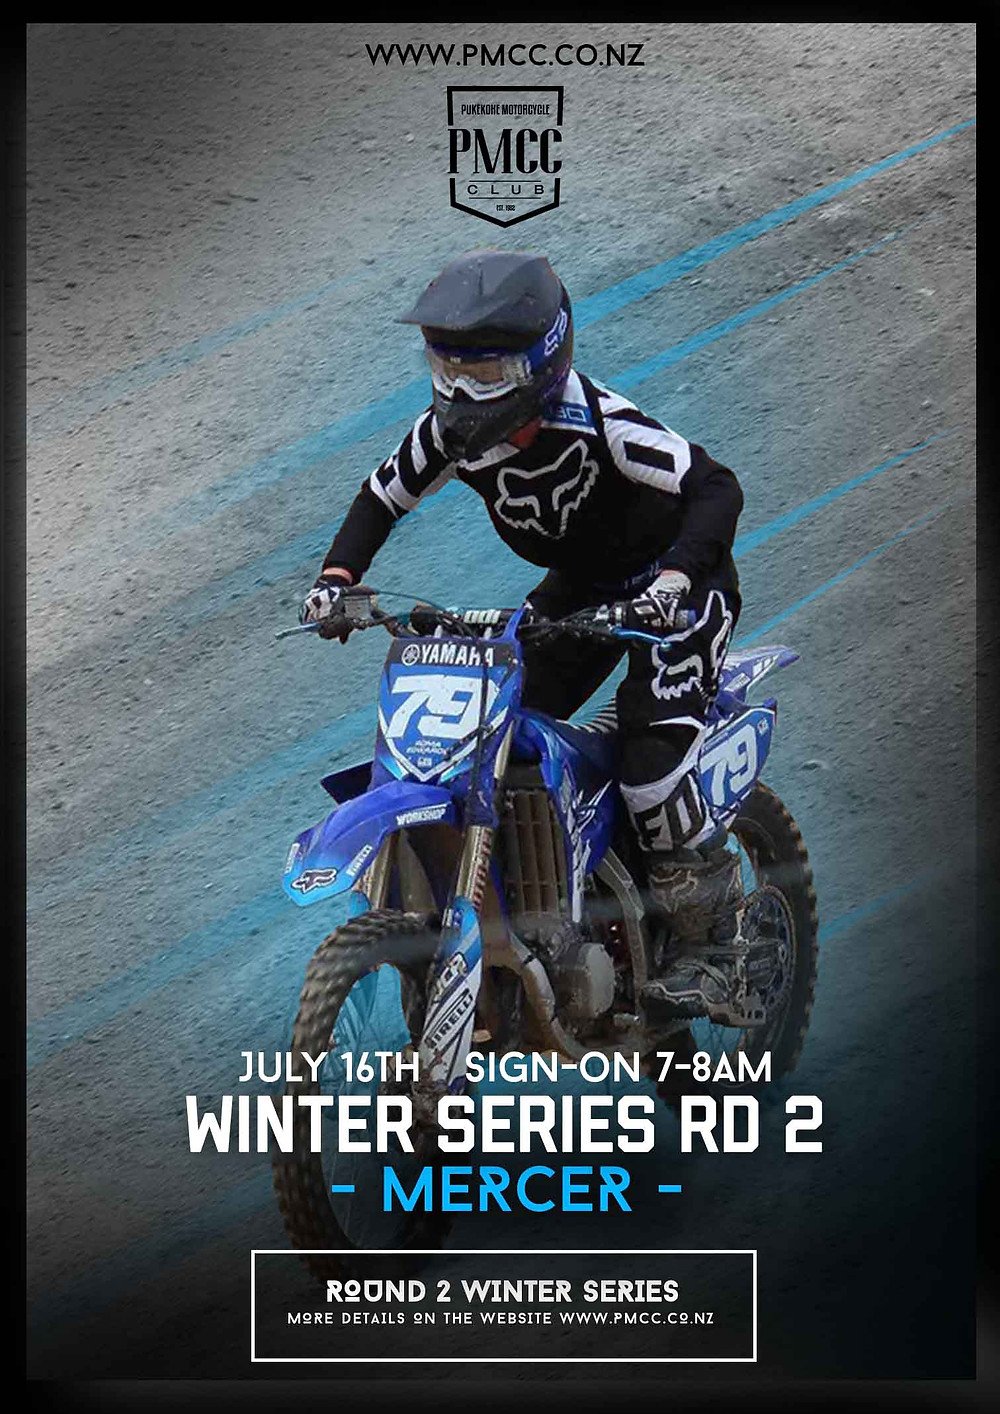 Round 2 of the Winter Series is this Sunday July 16th. Entries are open online at www.pmcc.co.nz. We are excited to run a new layout for this round so please note the pits and starting areas have been relocated so be sure not to pit in the old pit area. The main track has been fitted with a 40 gate start and the mini track has a 30 gate bungee start. Sign on is 7-8am and seniors are able to double class using the Senior Open class which runs for 2 of the 3 rounds. Check the website for details.